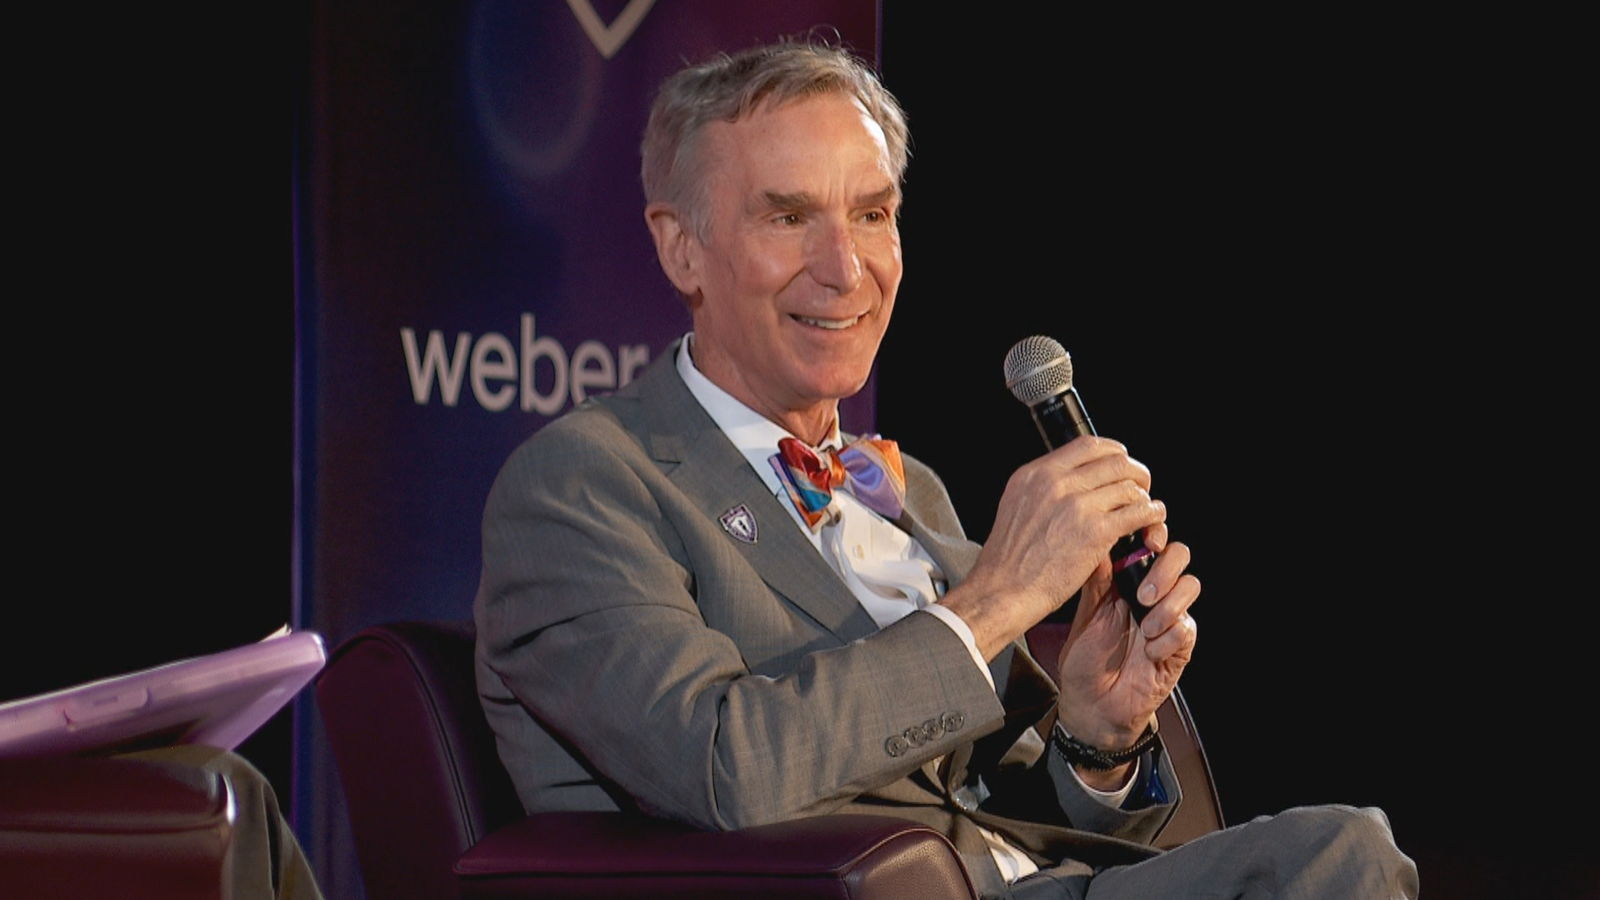 Bill Nye The Science Guy Captivates Wsu Au Nce With